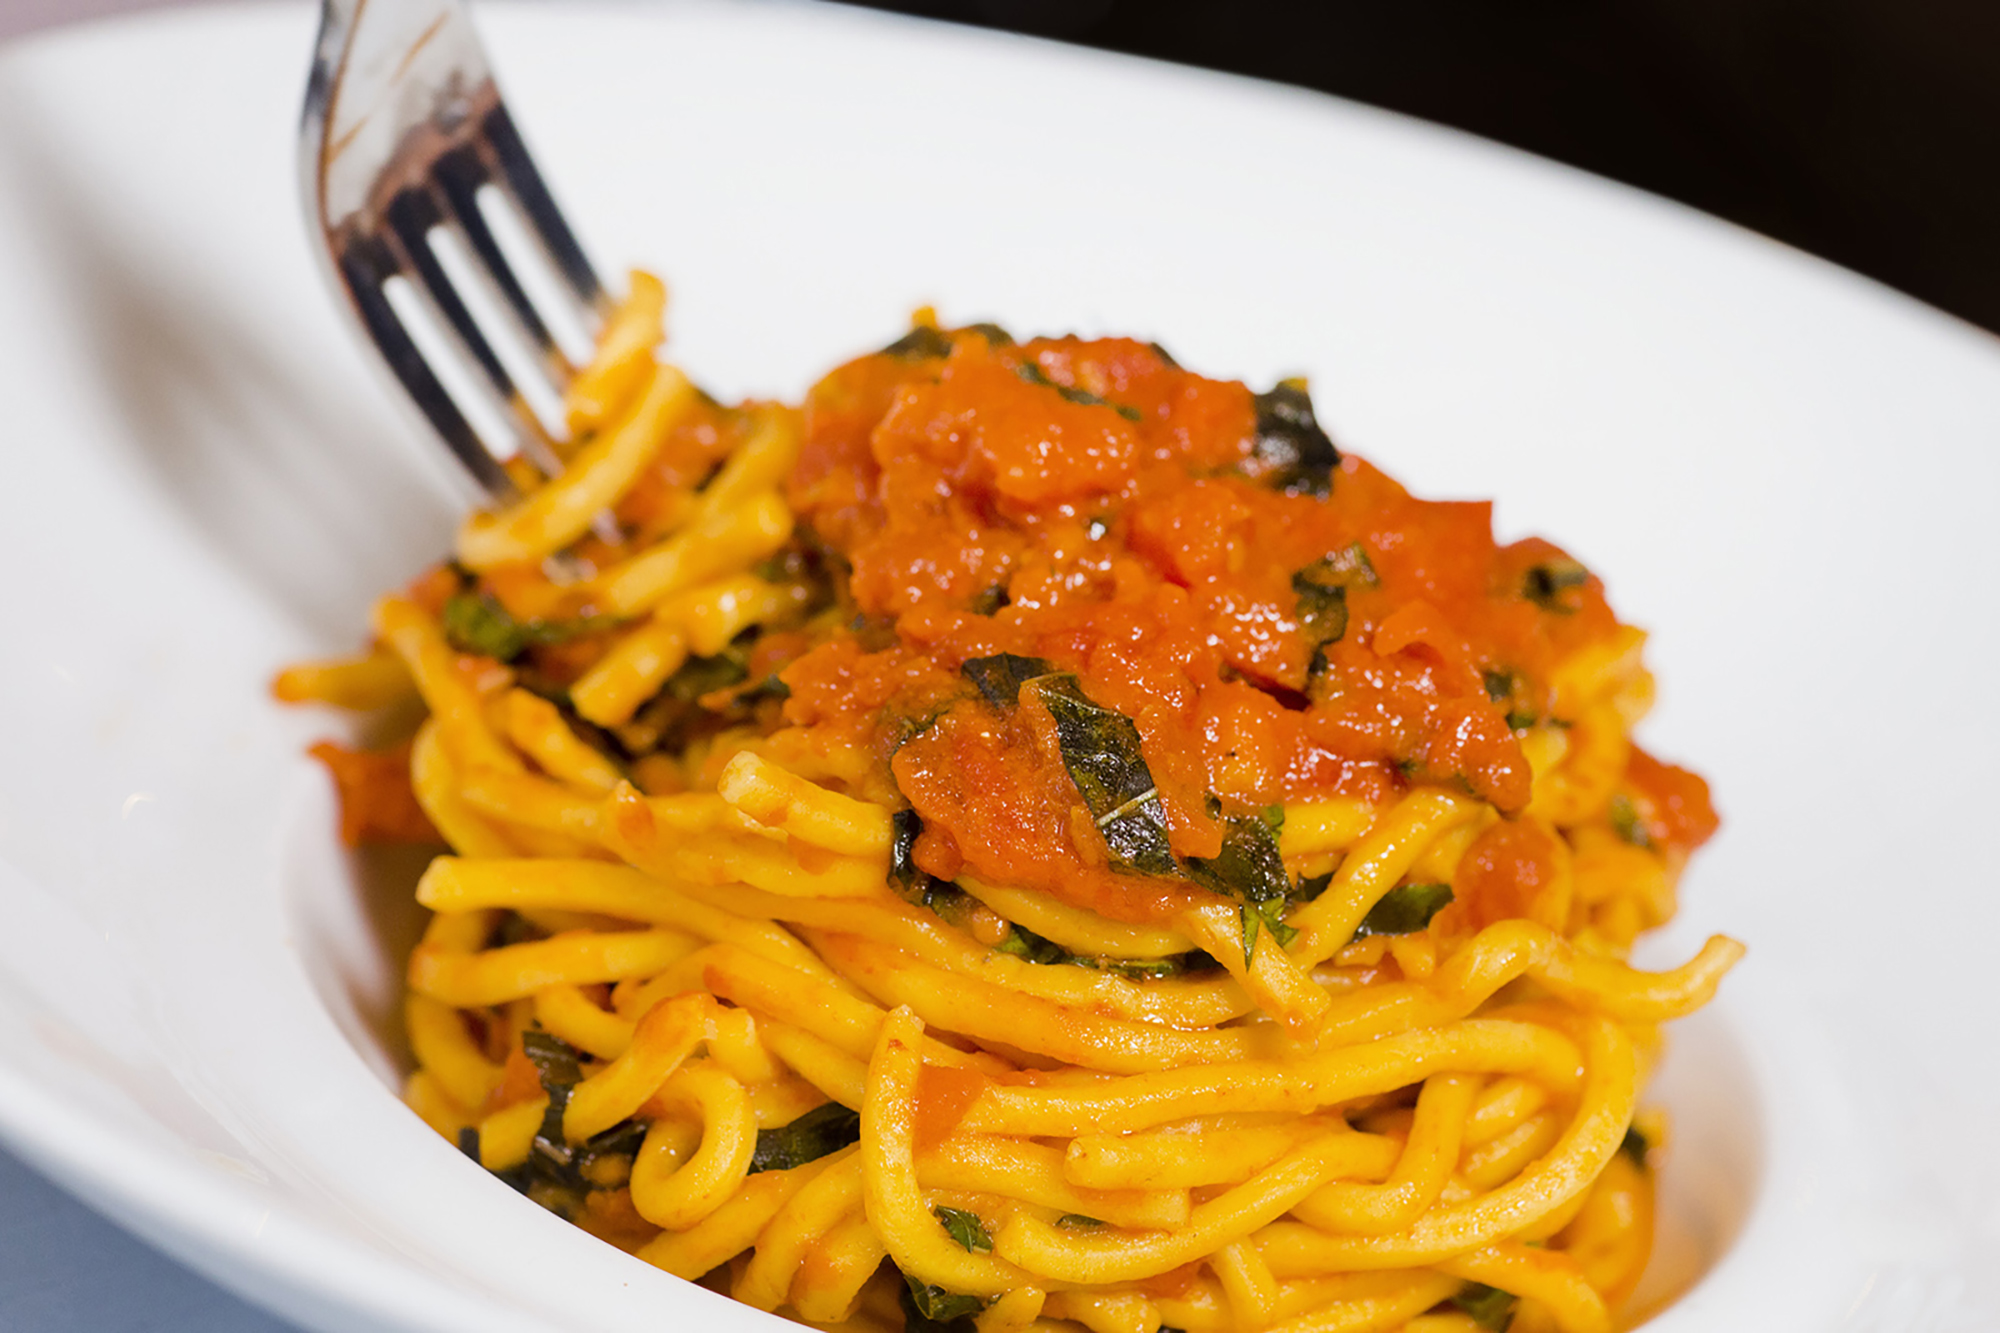 Single Event: Carb Up at Scarpetta by Scott Conant